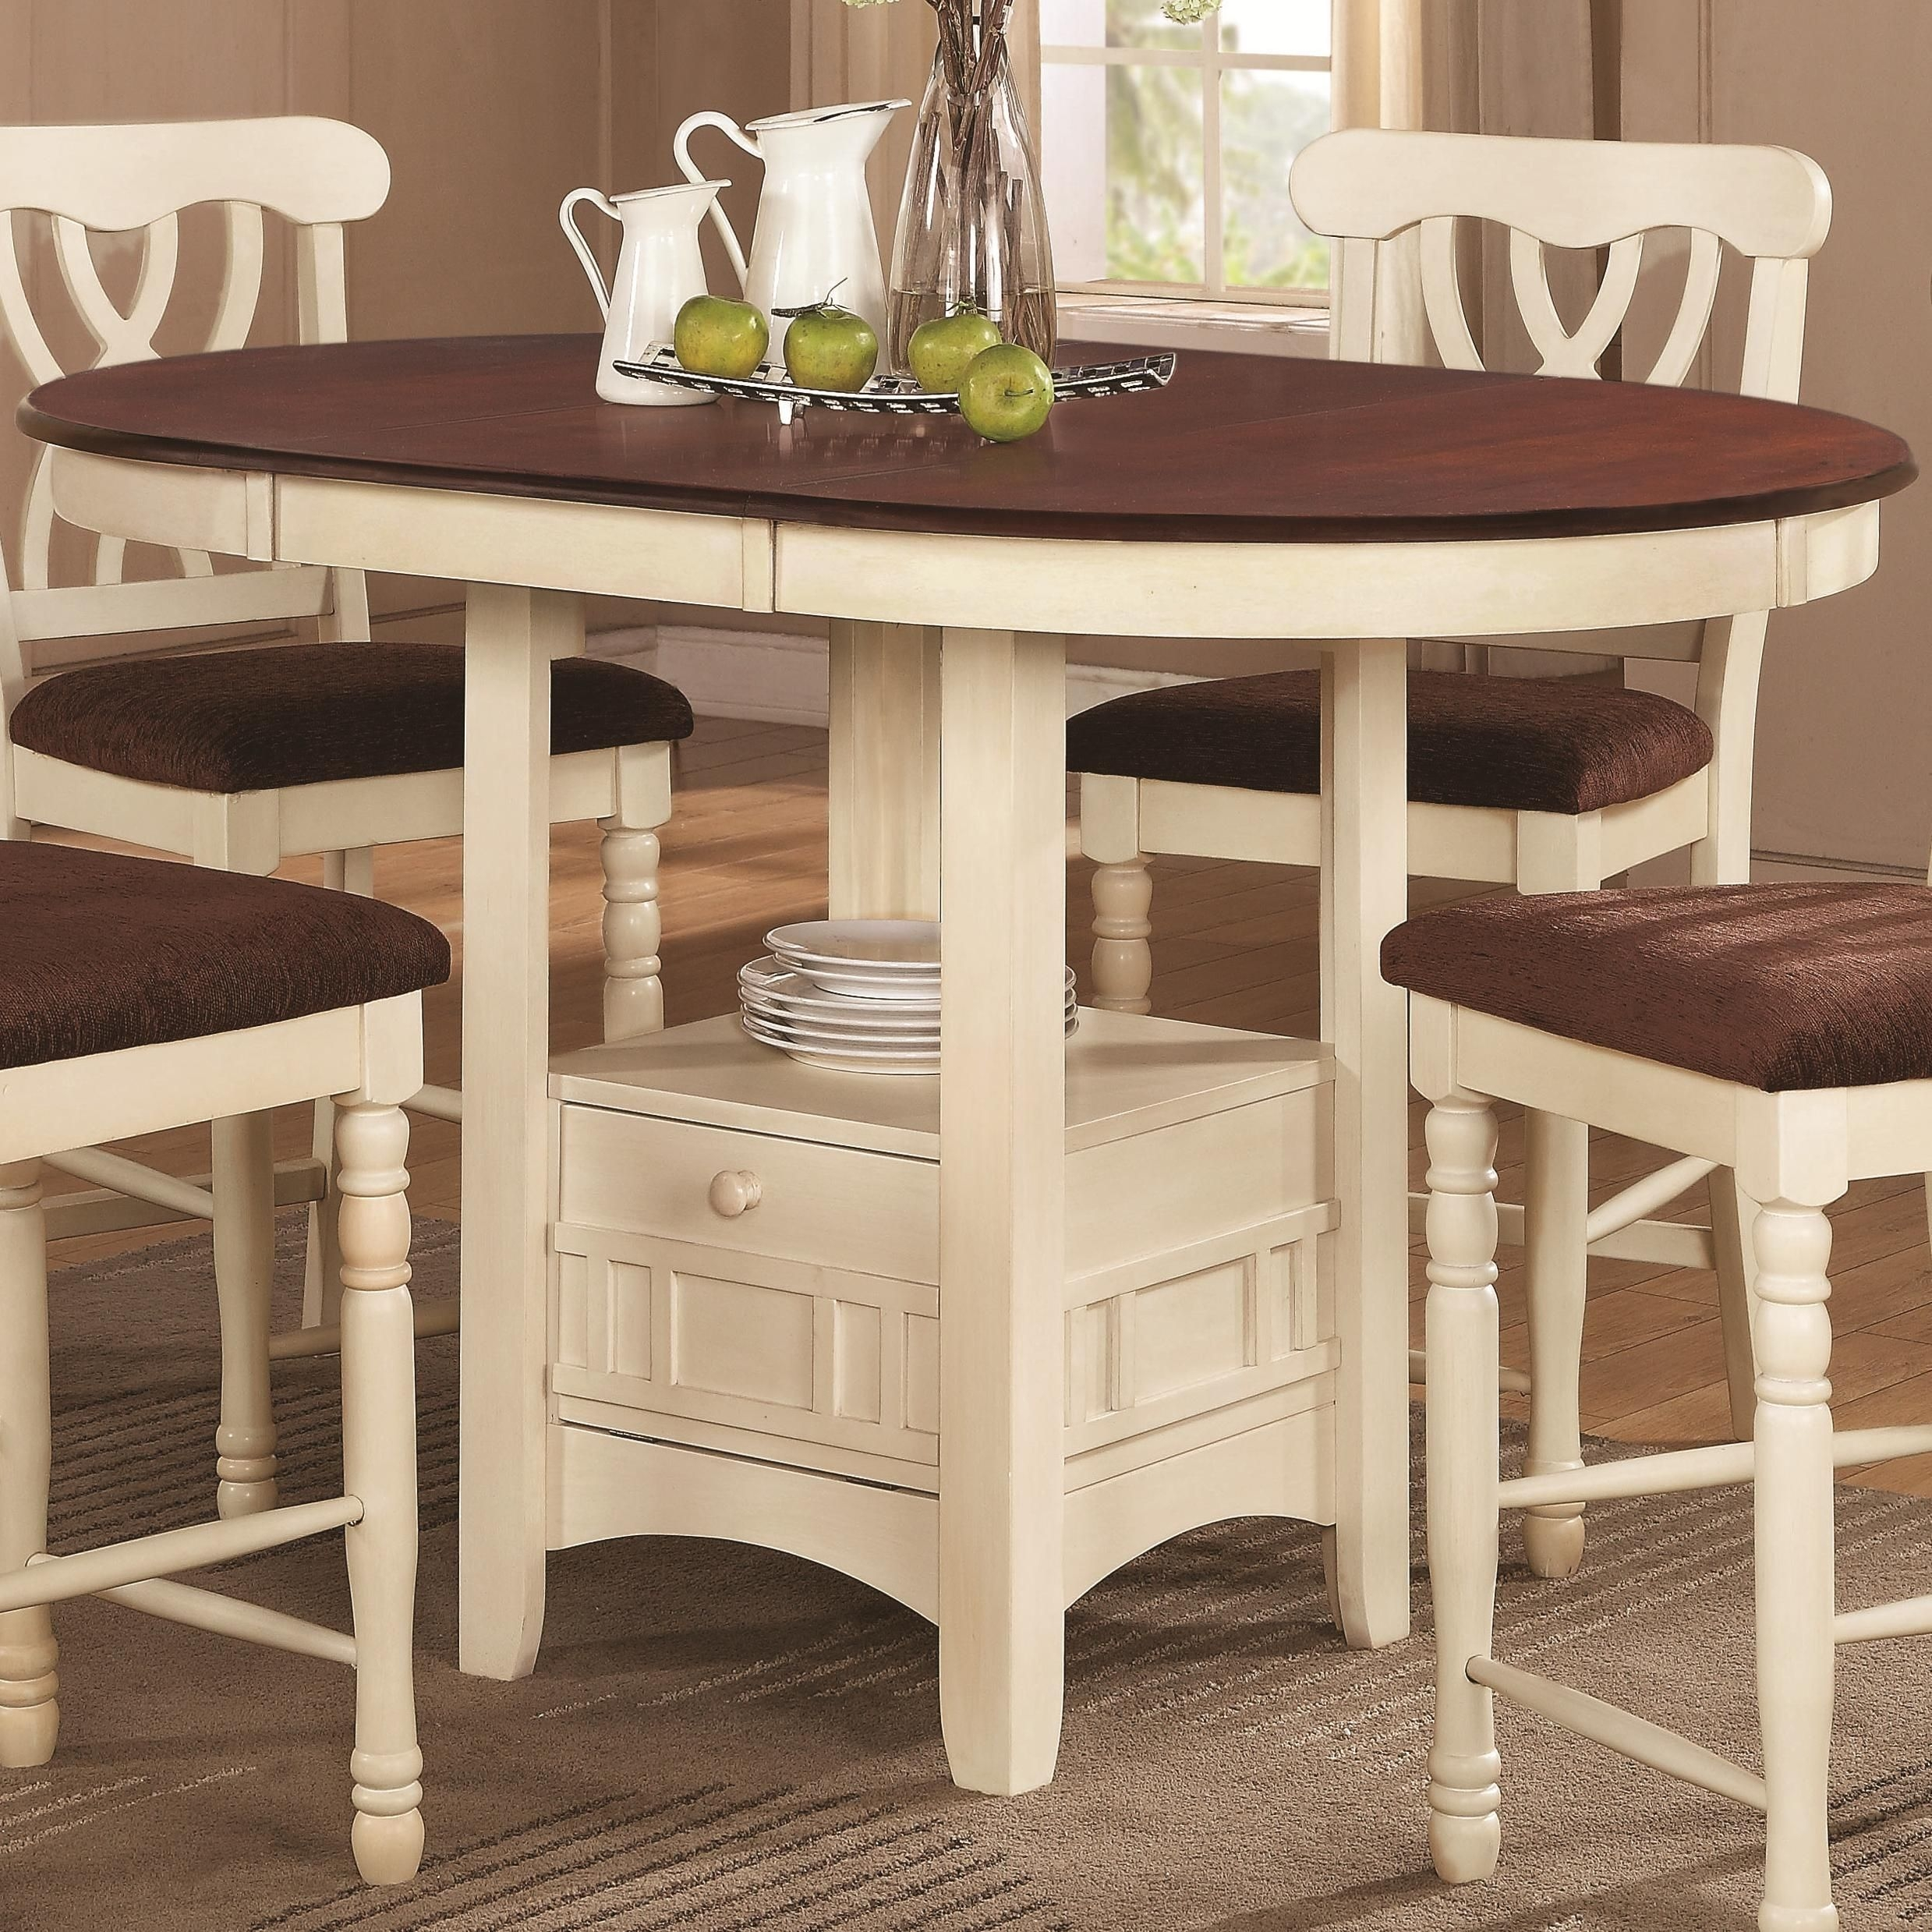 Exceptionnel Crate And Barrel Round Dining Table